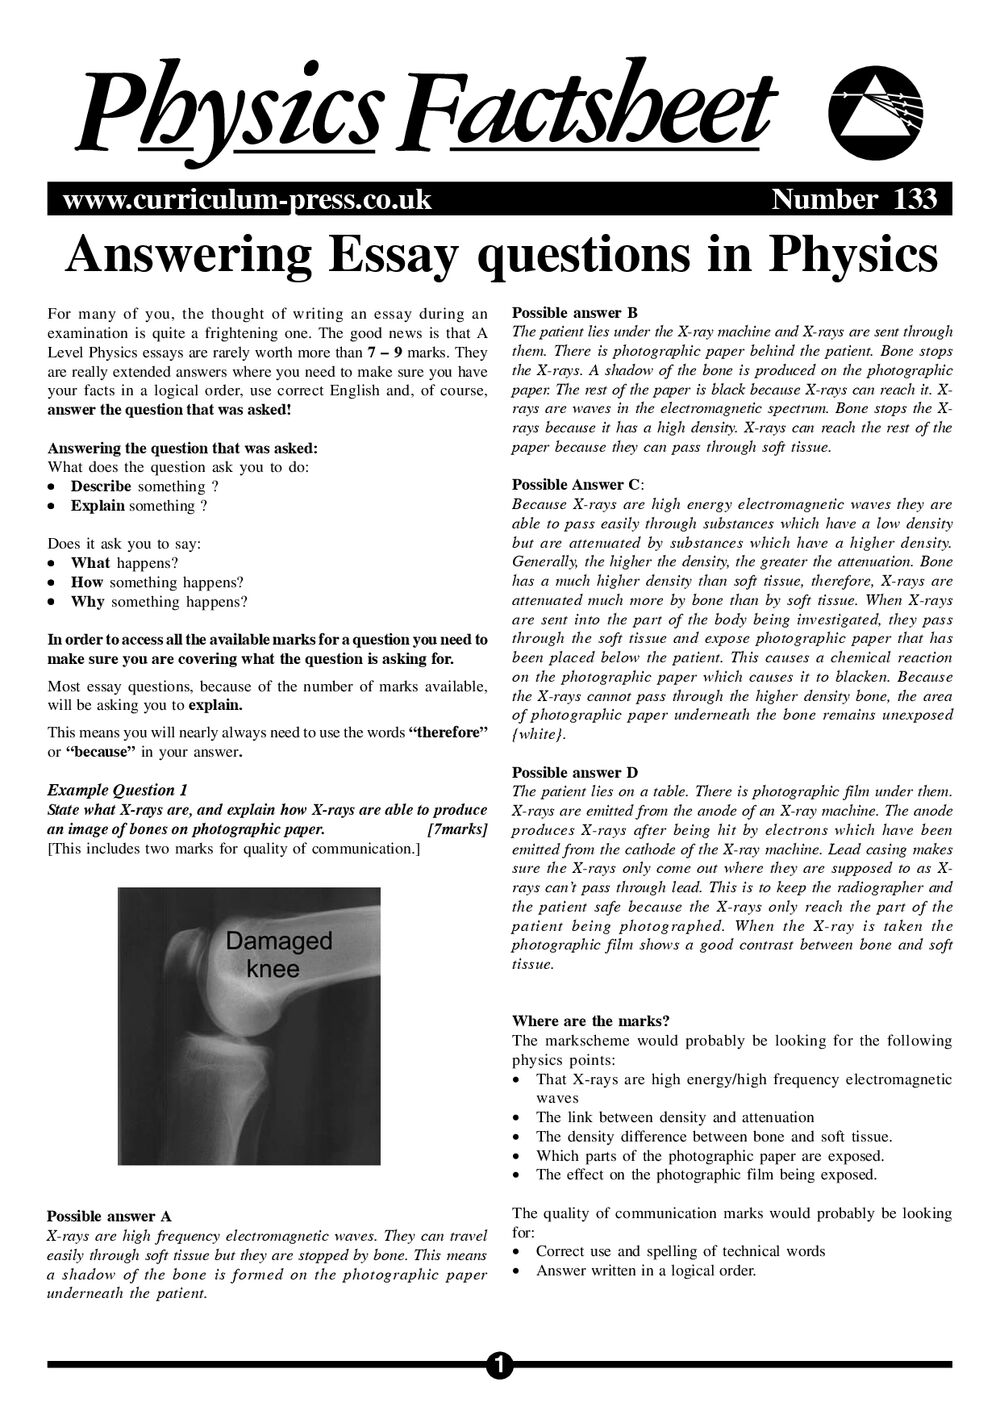 Answering Essay Questions in Physics - Curriculum Press